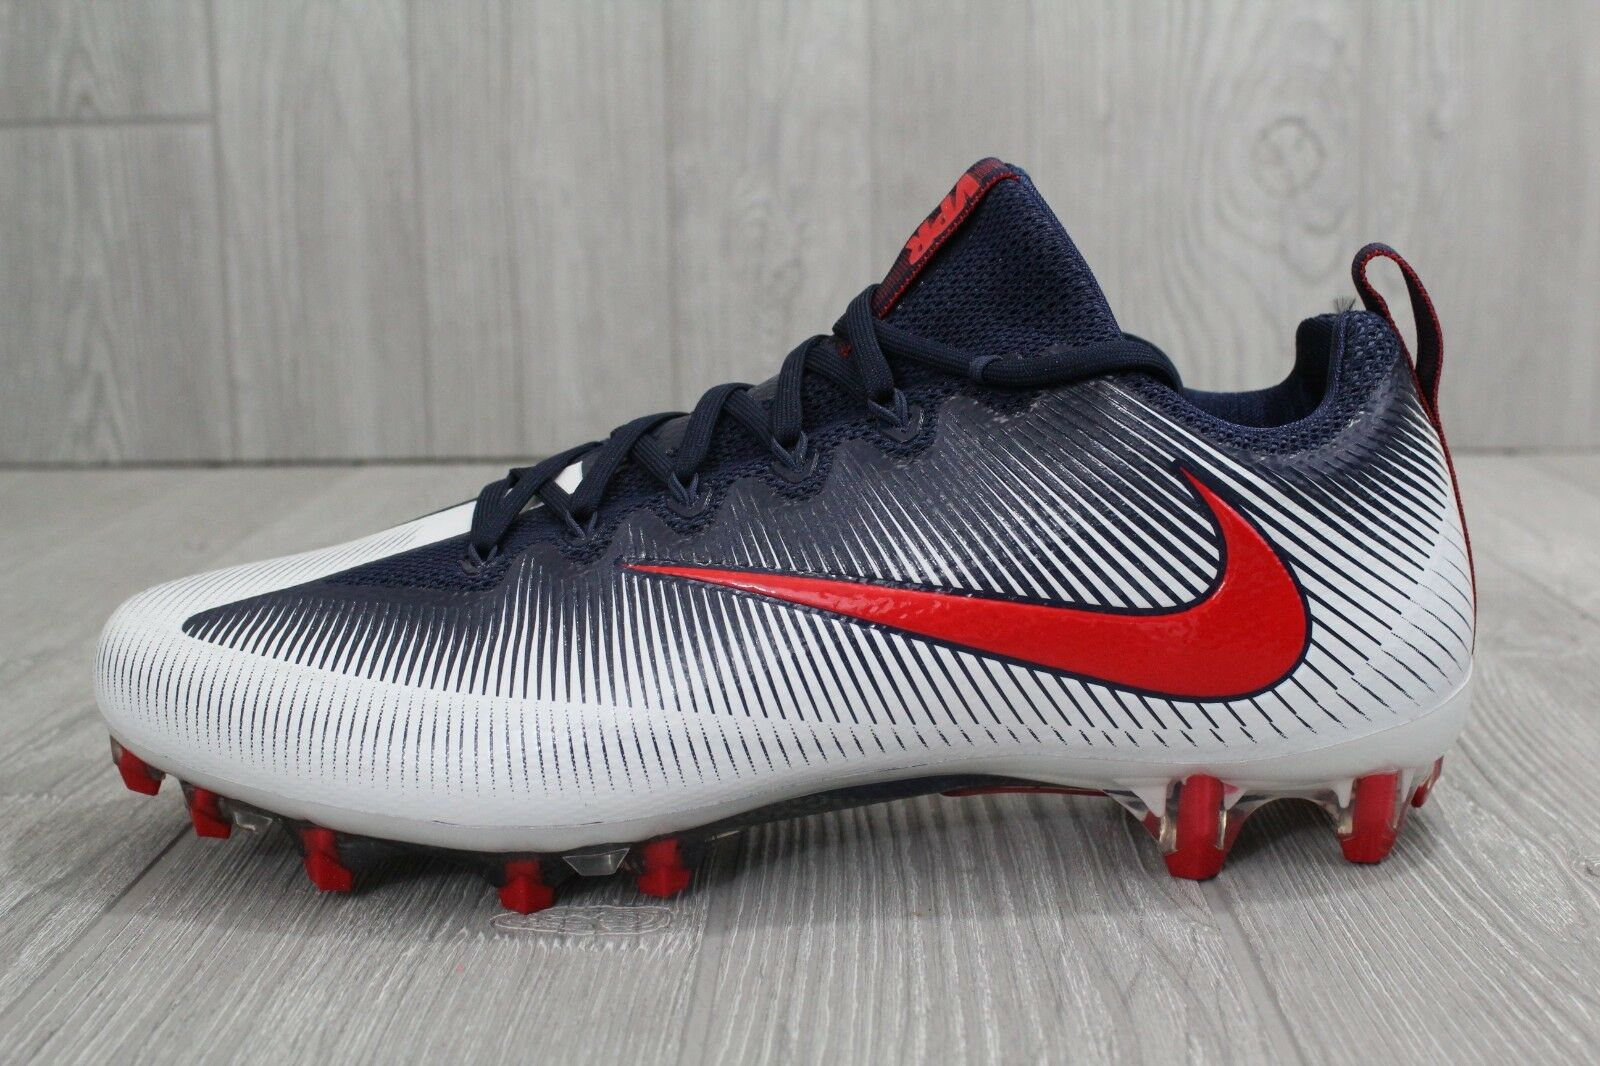 Nike Vapor intocable pro PF Football 839924-113 cleat azul rojo blanco 839924-113 Football 12 9a30a8